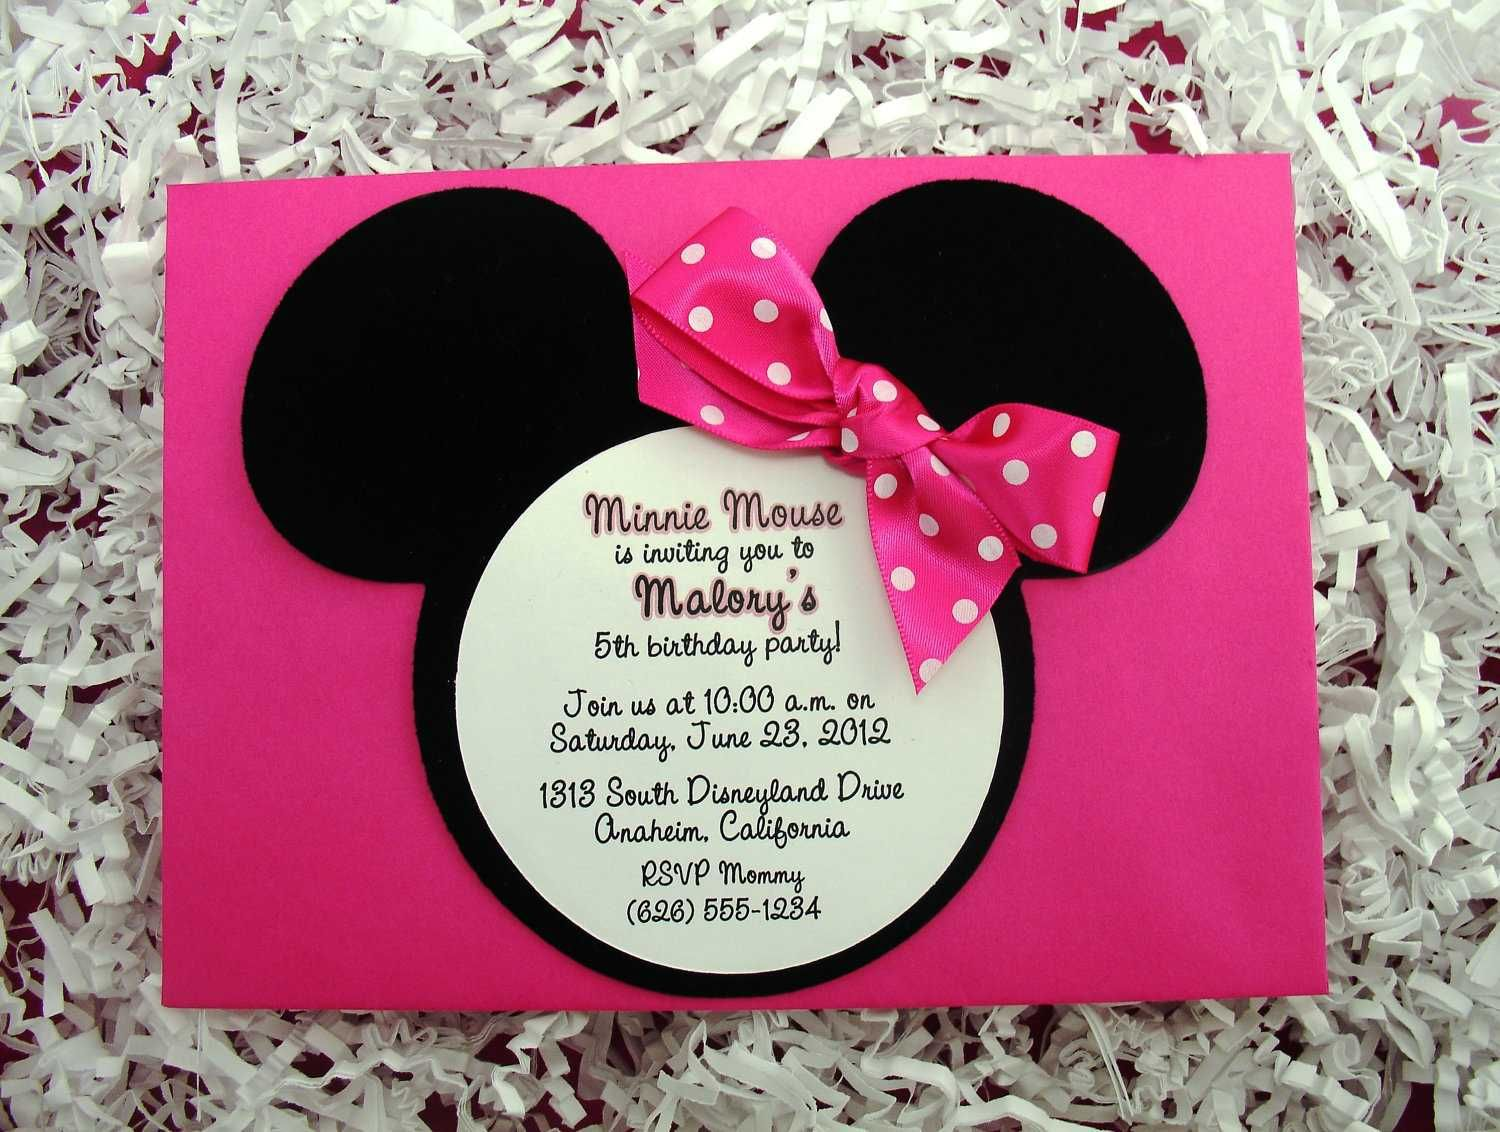 Very Cute Invitation Idea For A Little GirlS Minne Themed